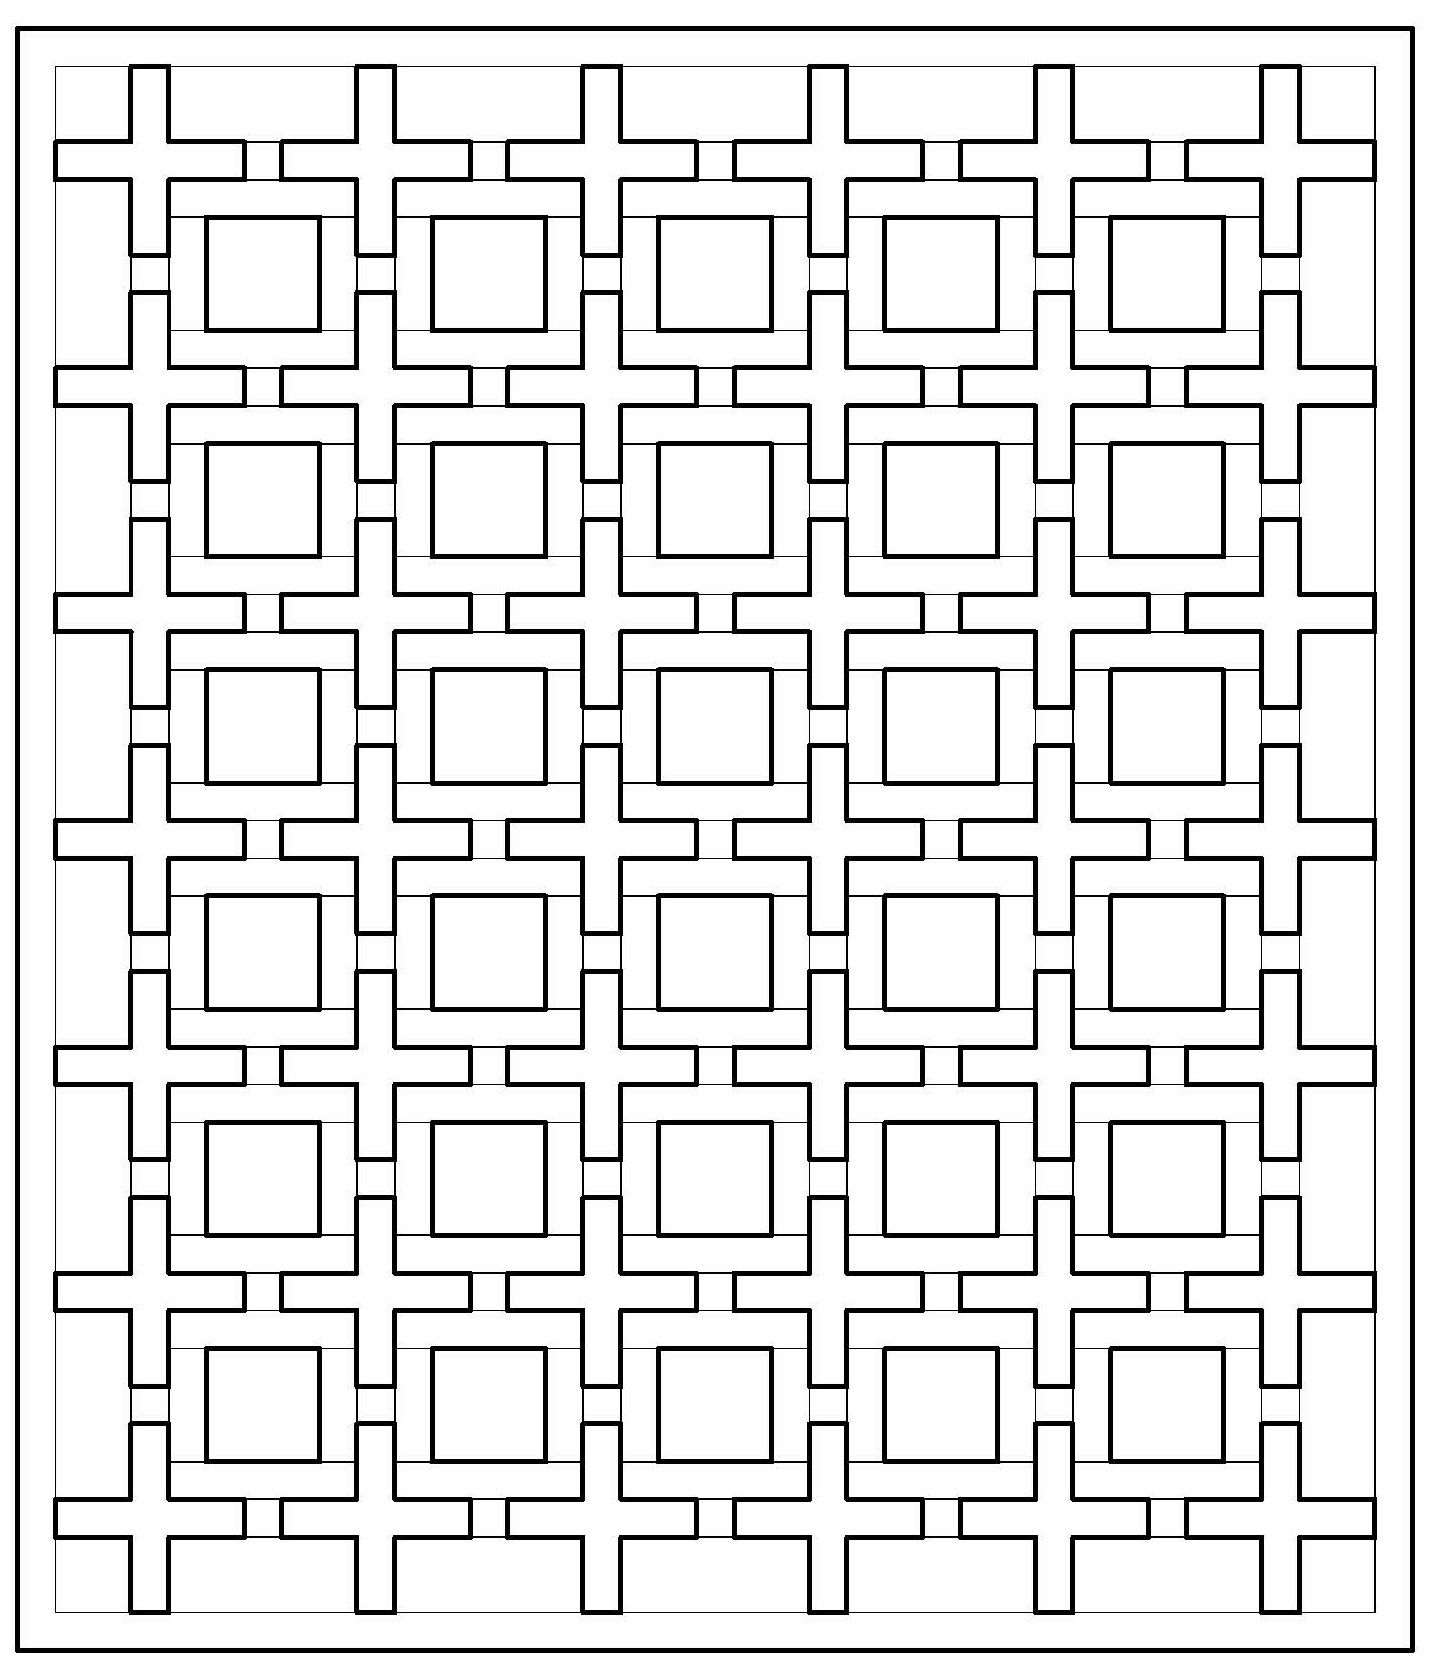 Design Patterns Coloring Pages Make Your Own Coloring Page By